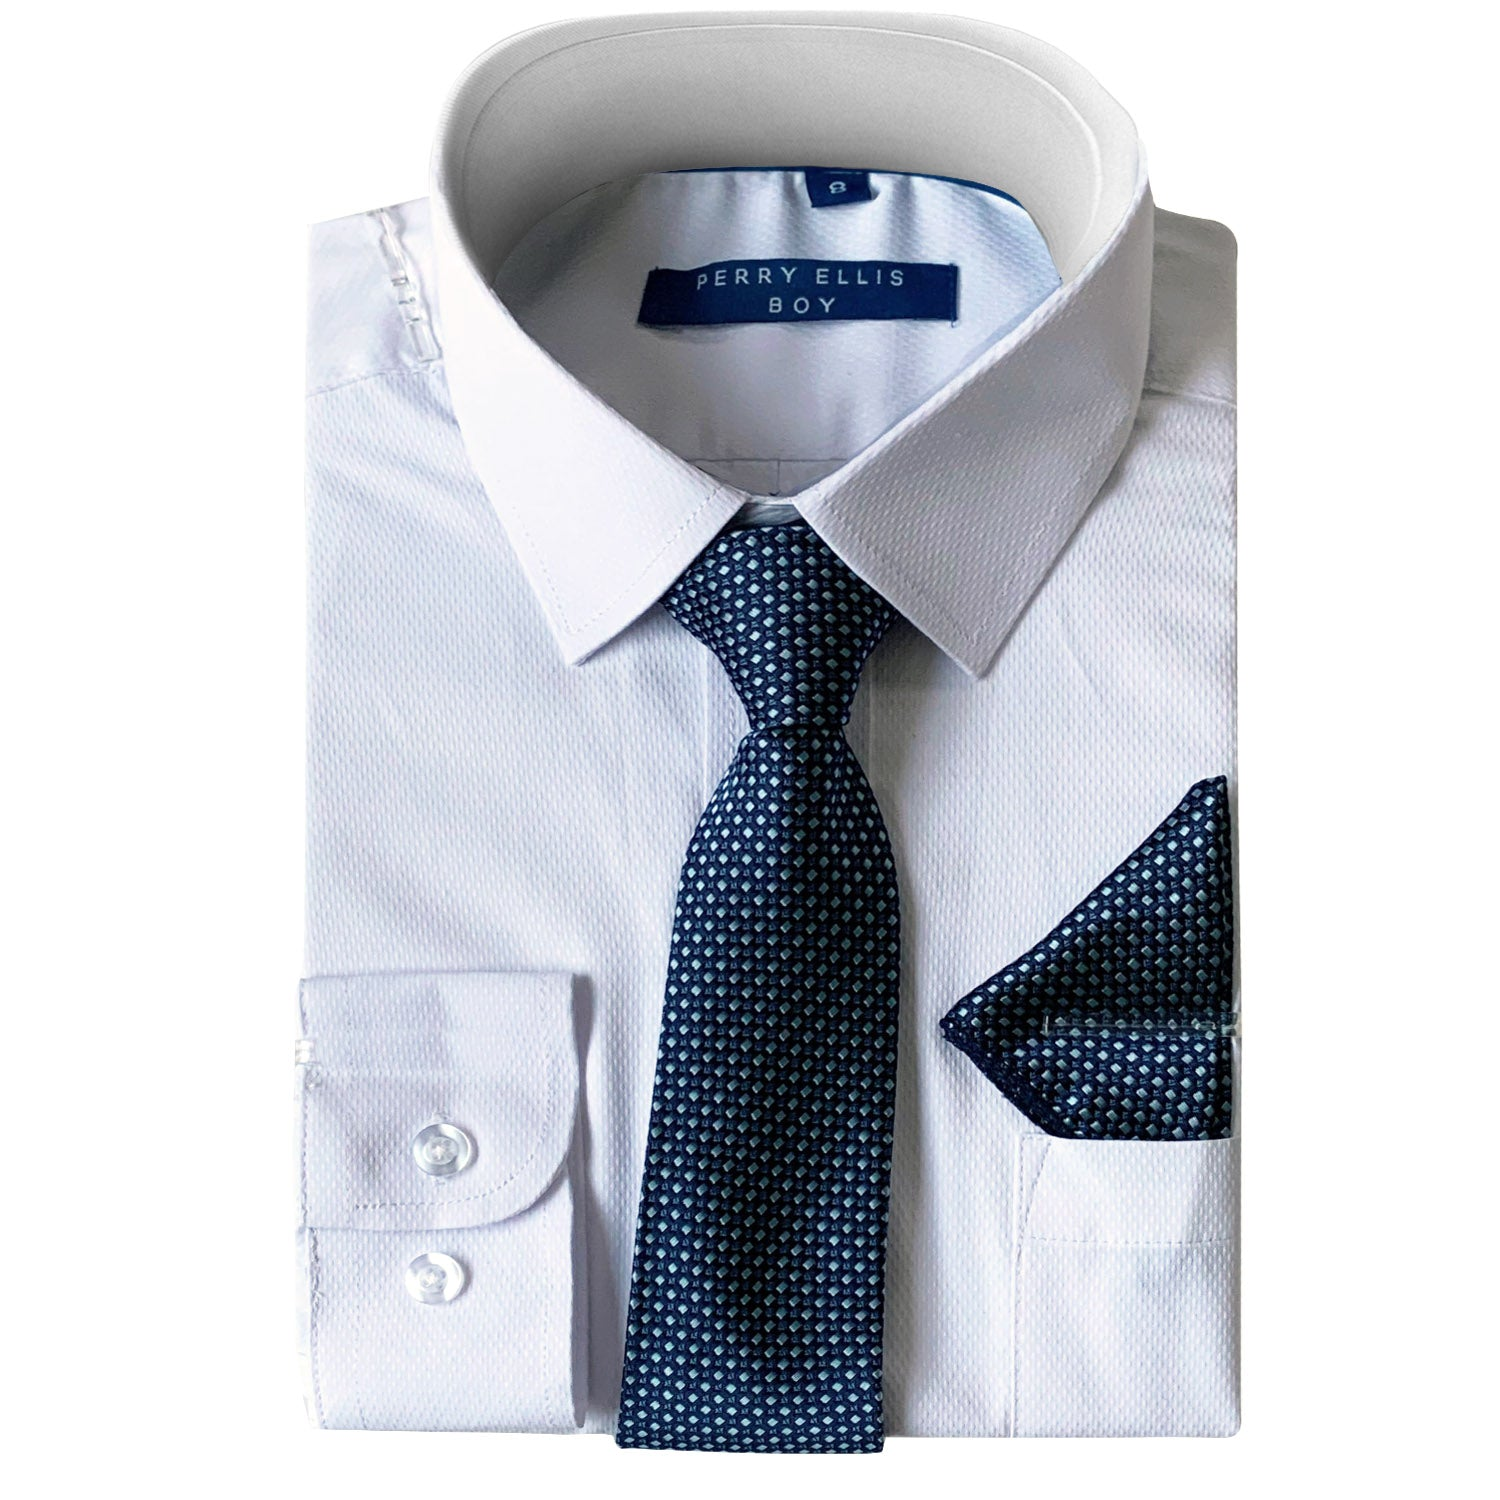 Perry Ellis Boys Dress Shirts w Indigo Tie Solid Shirts w Patterned Tie